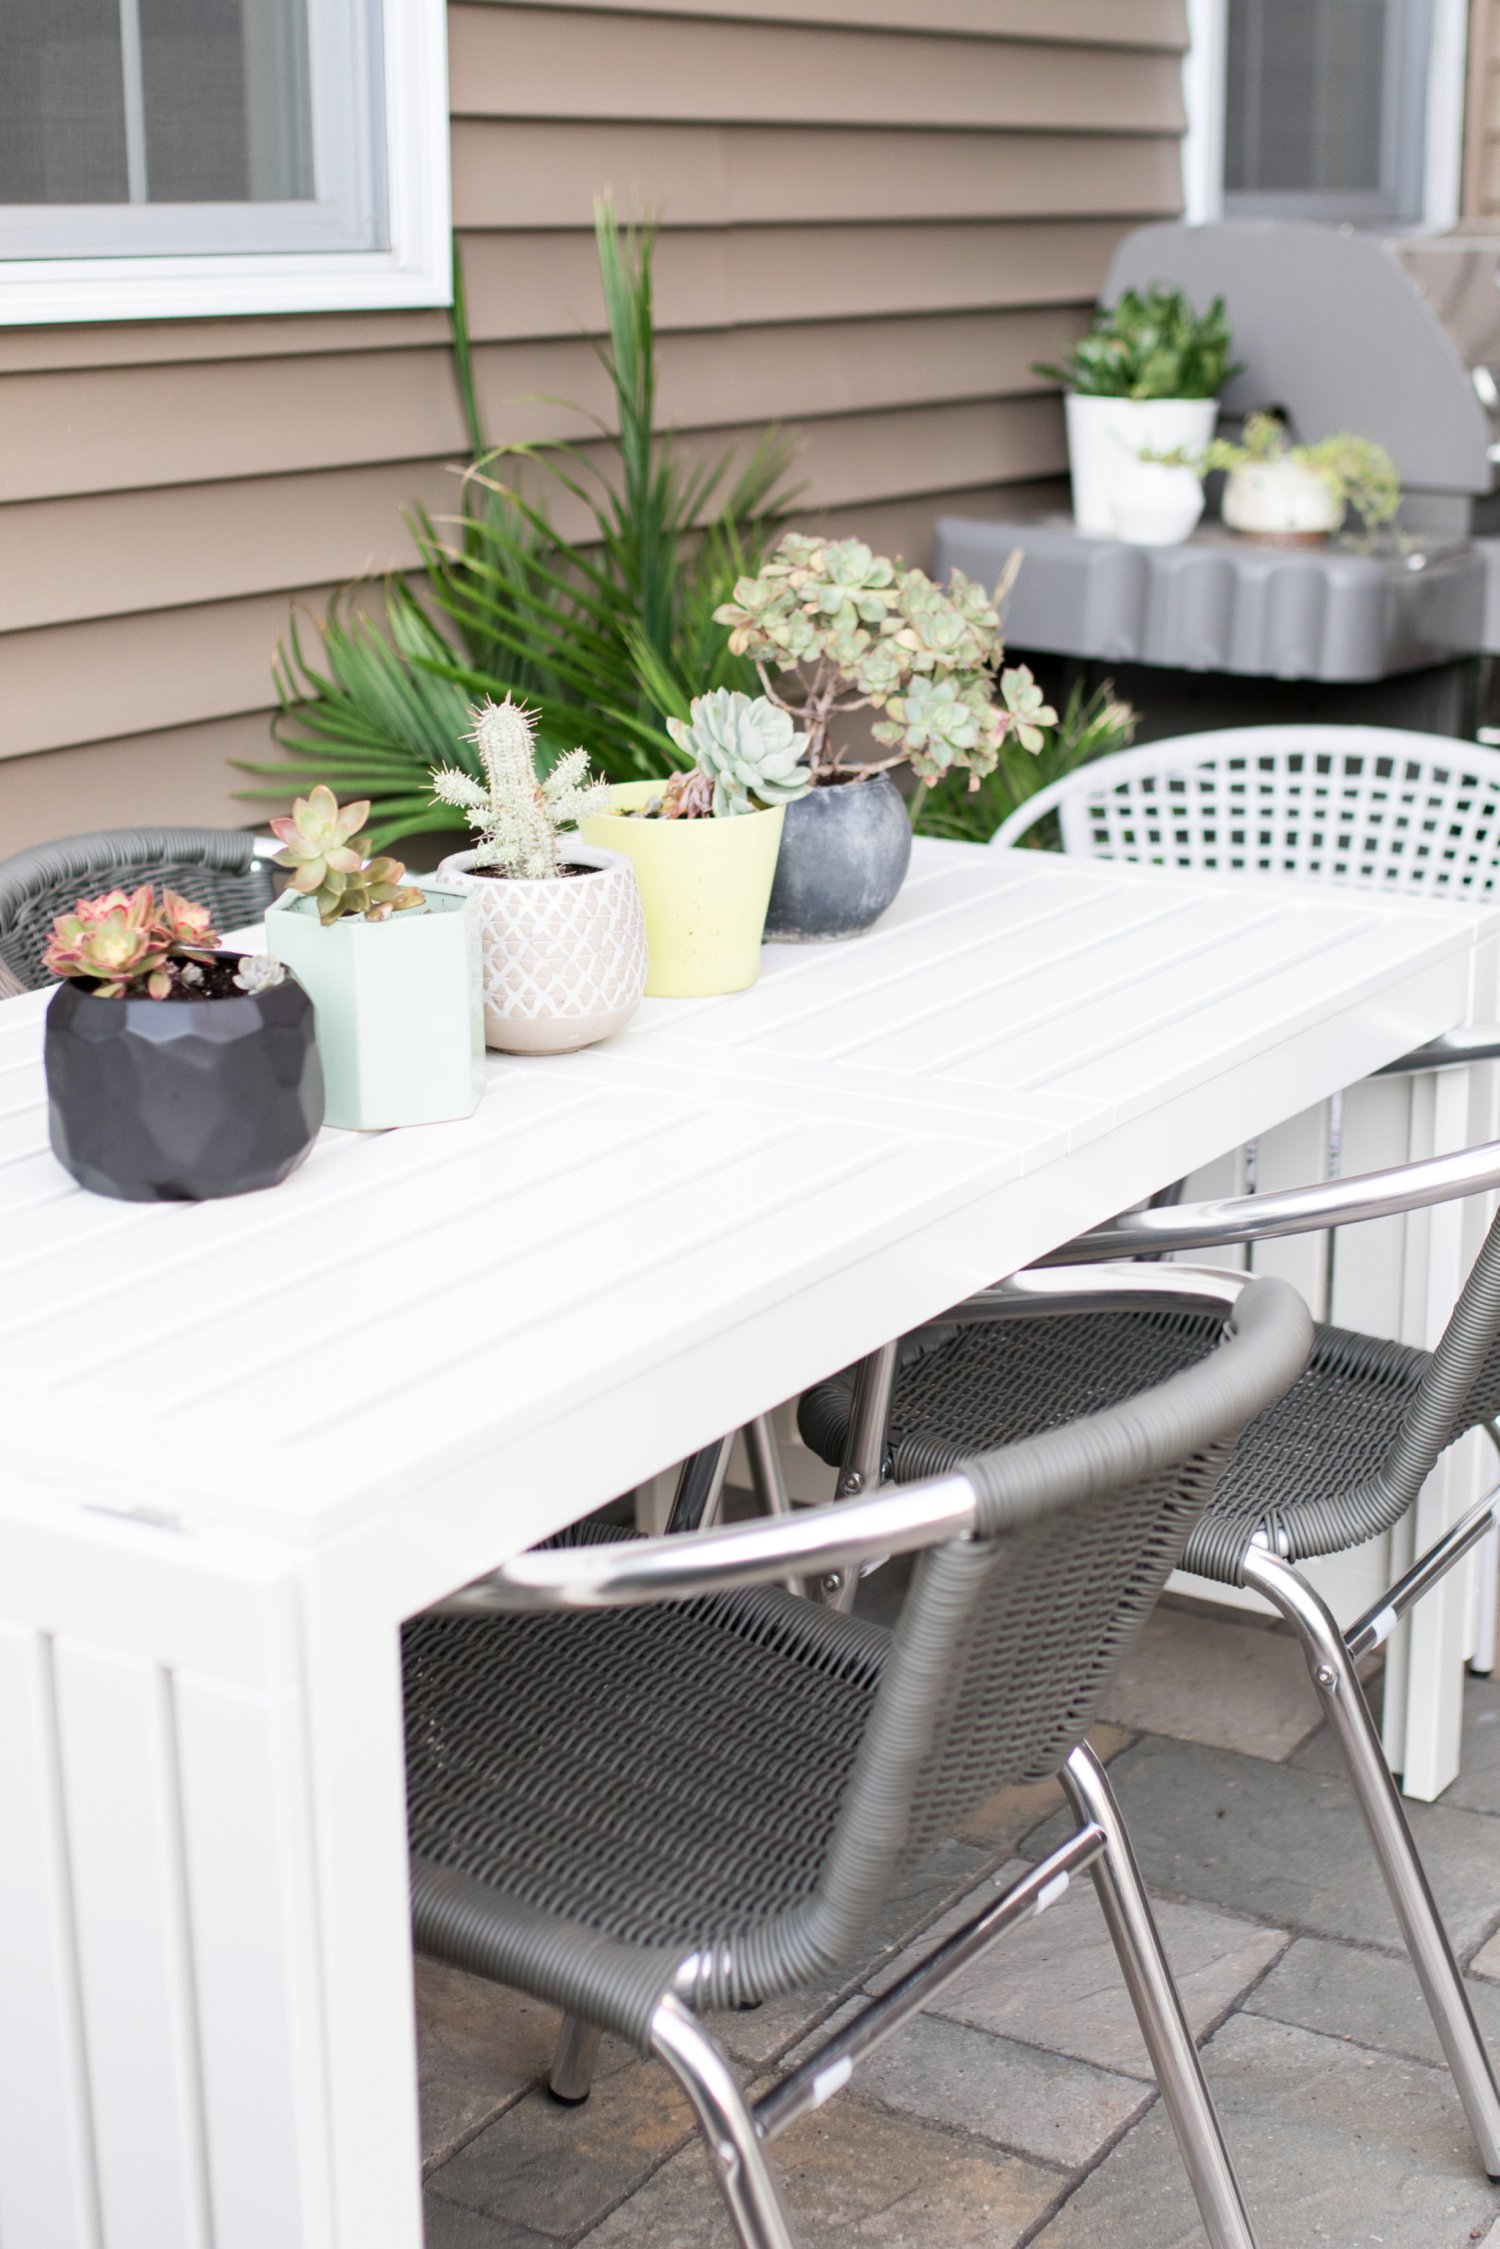 Sabrina Reis Photography | Minneapolis Photography | Patio Update_0014.jpg